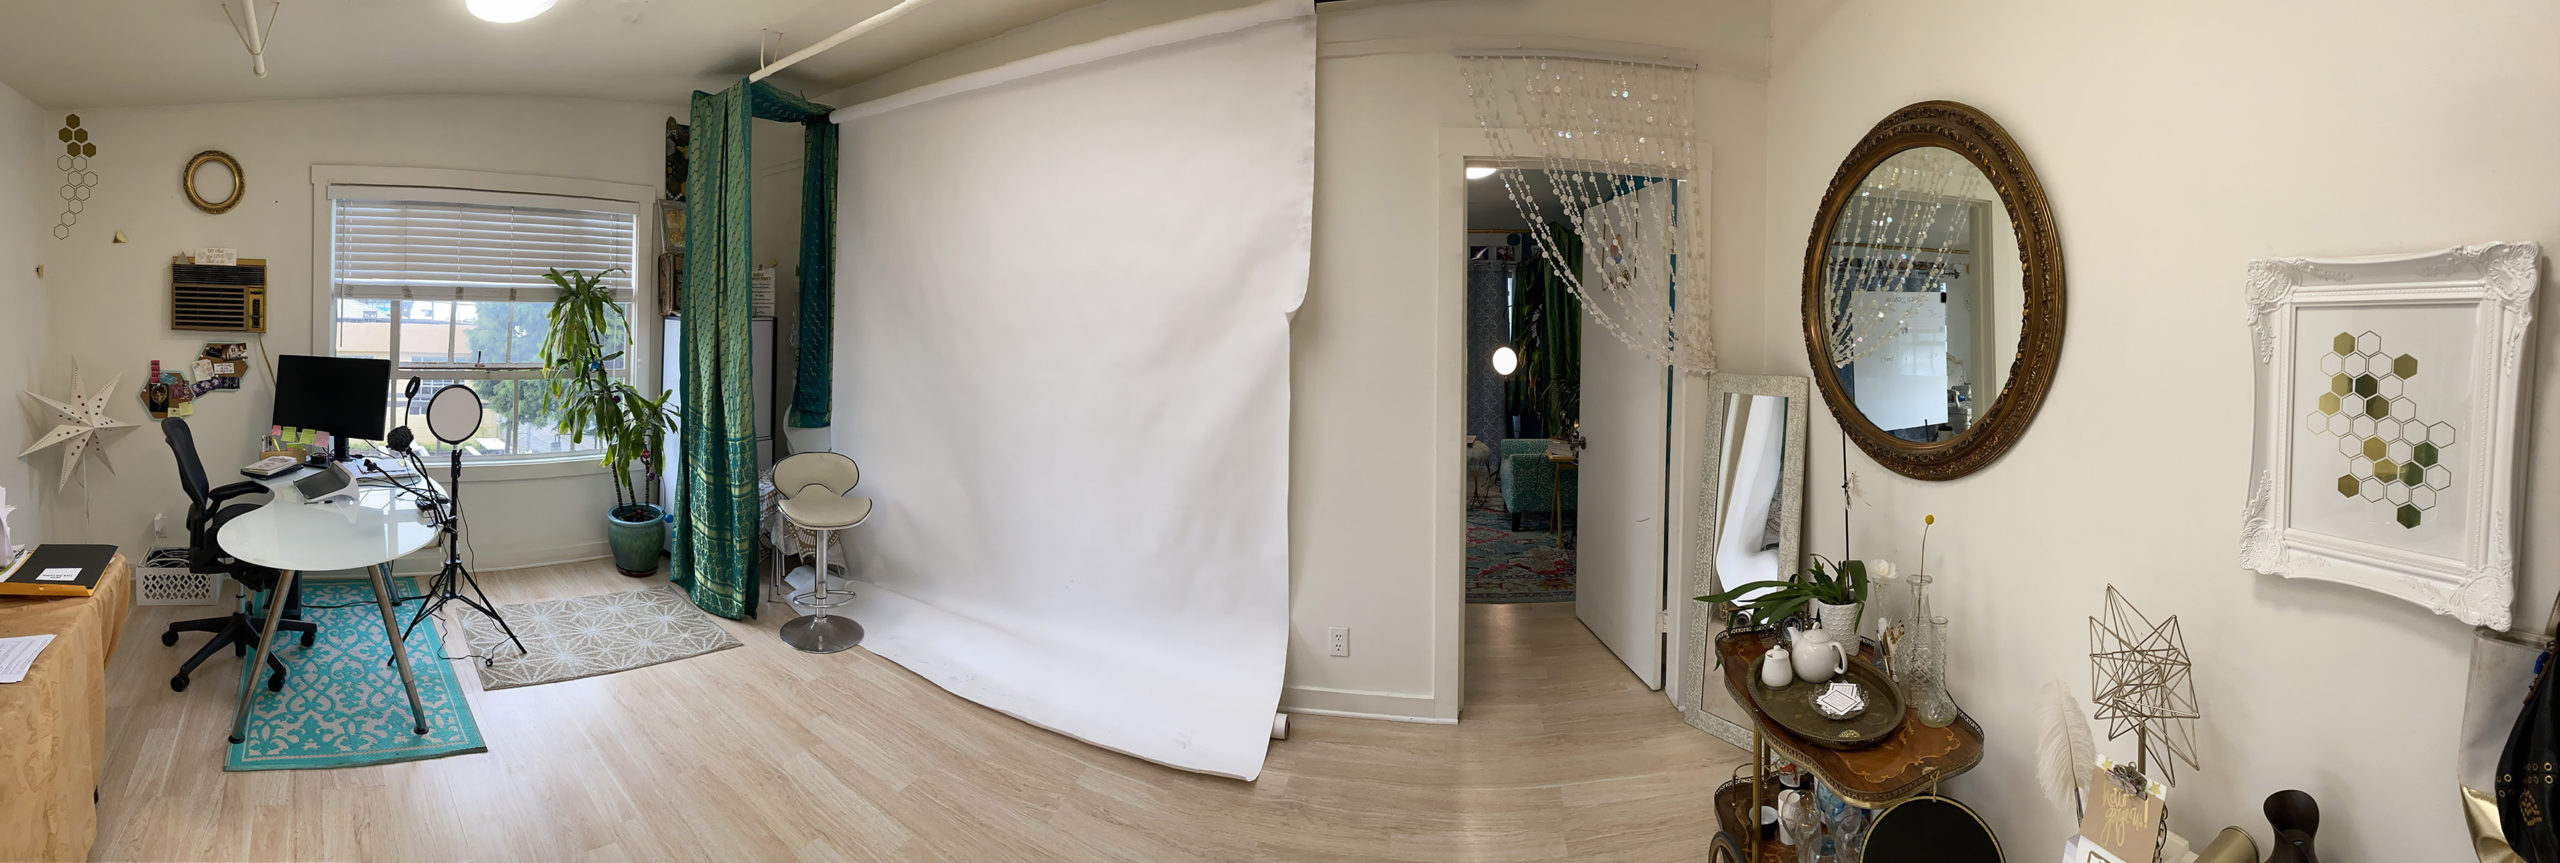 Catalyst Studios- Brand Photography & Video Studio in Berkeley, CA